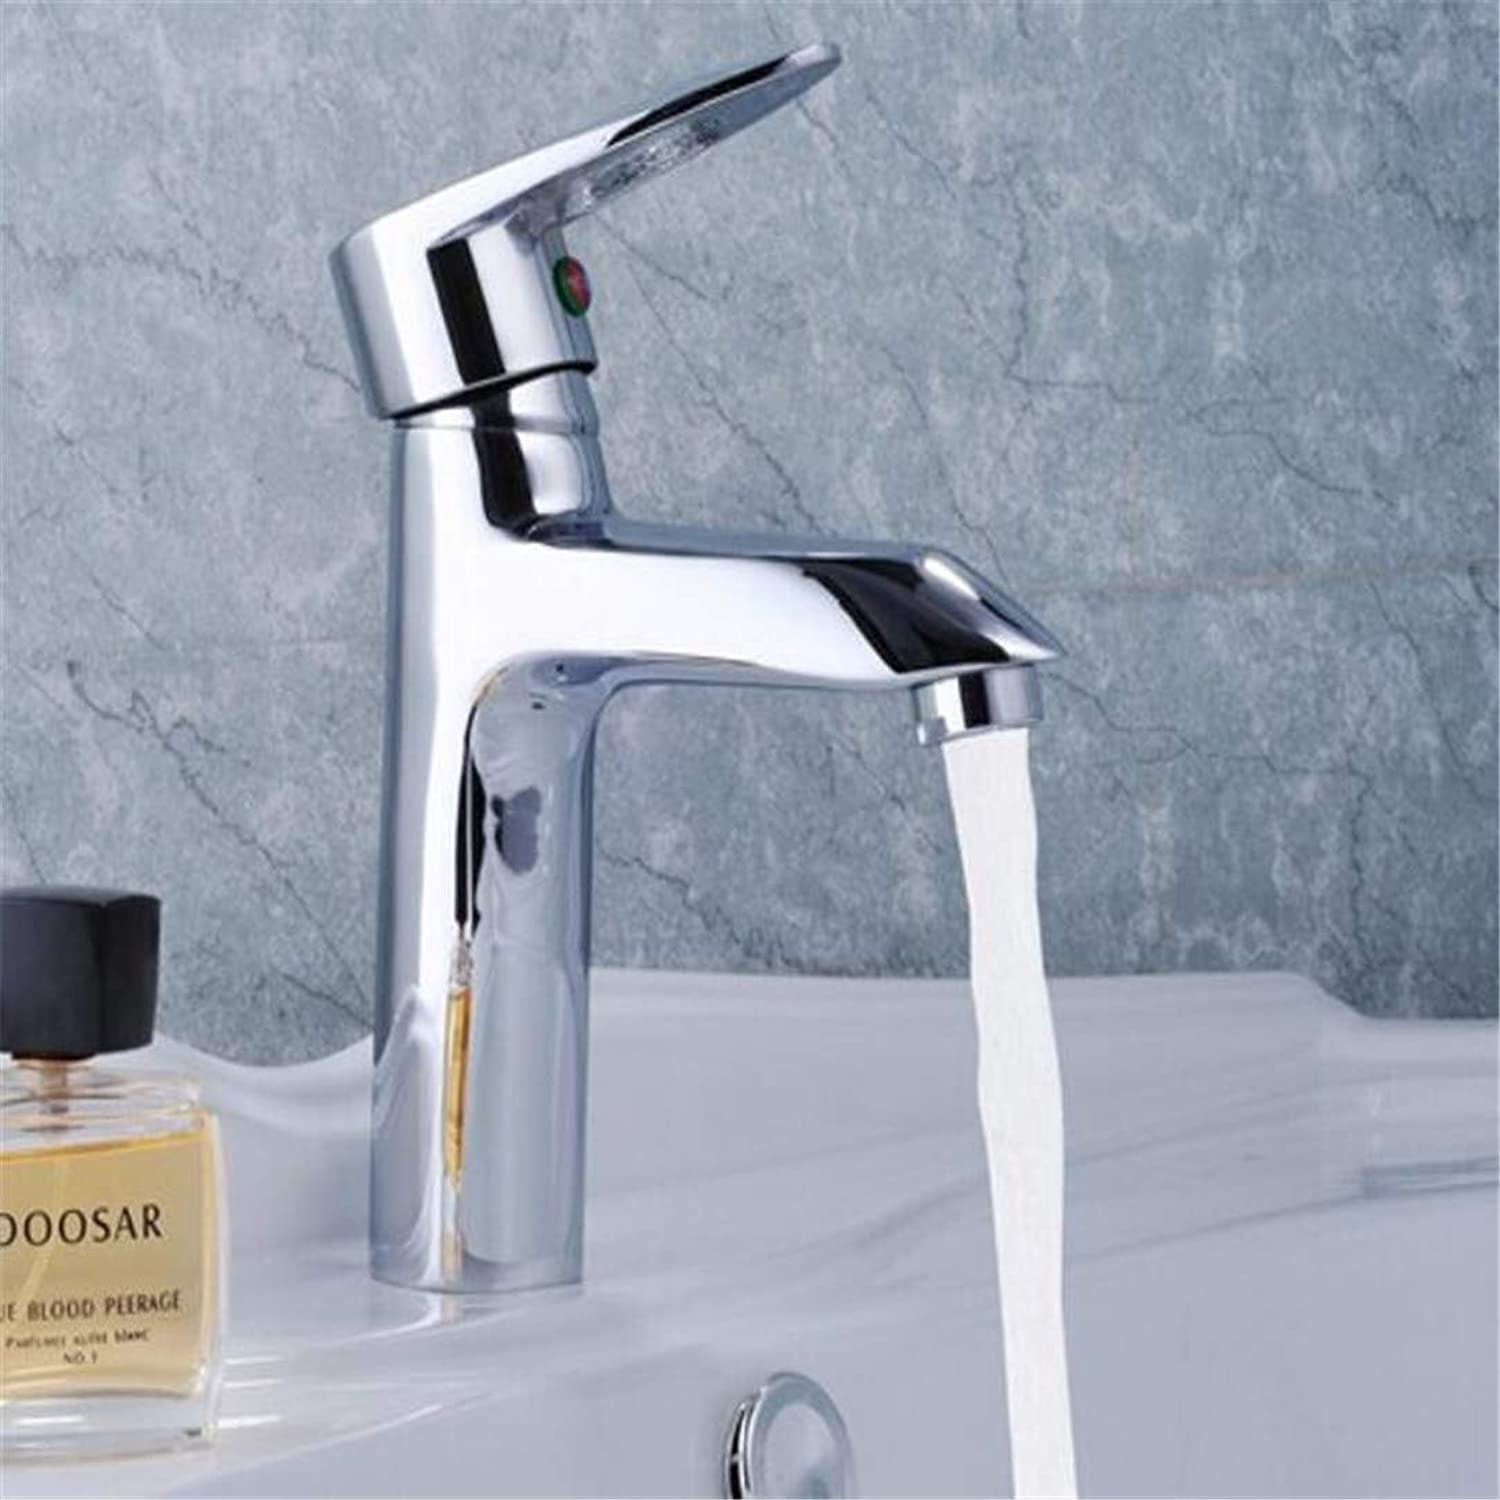 Faucet Washbasin Mixer Exclusive Personalized Art Polished Chrome Solid Brass Hot and Cold Bathroom Basin Sink Faucet